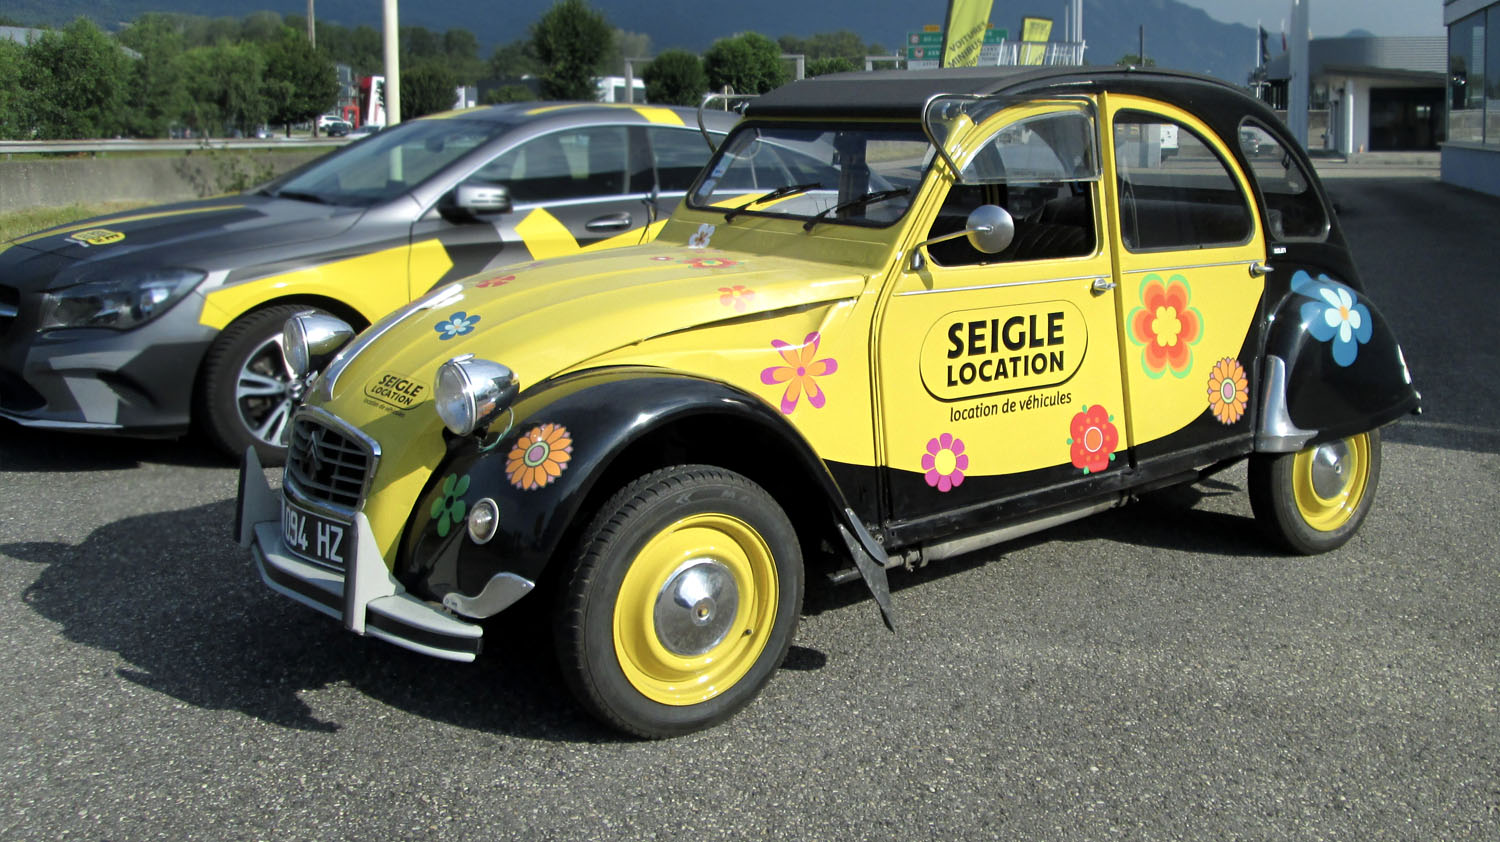 Seigle-location-2CV-vintage